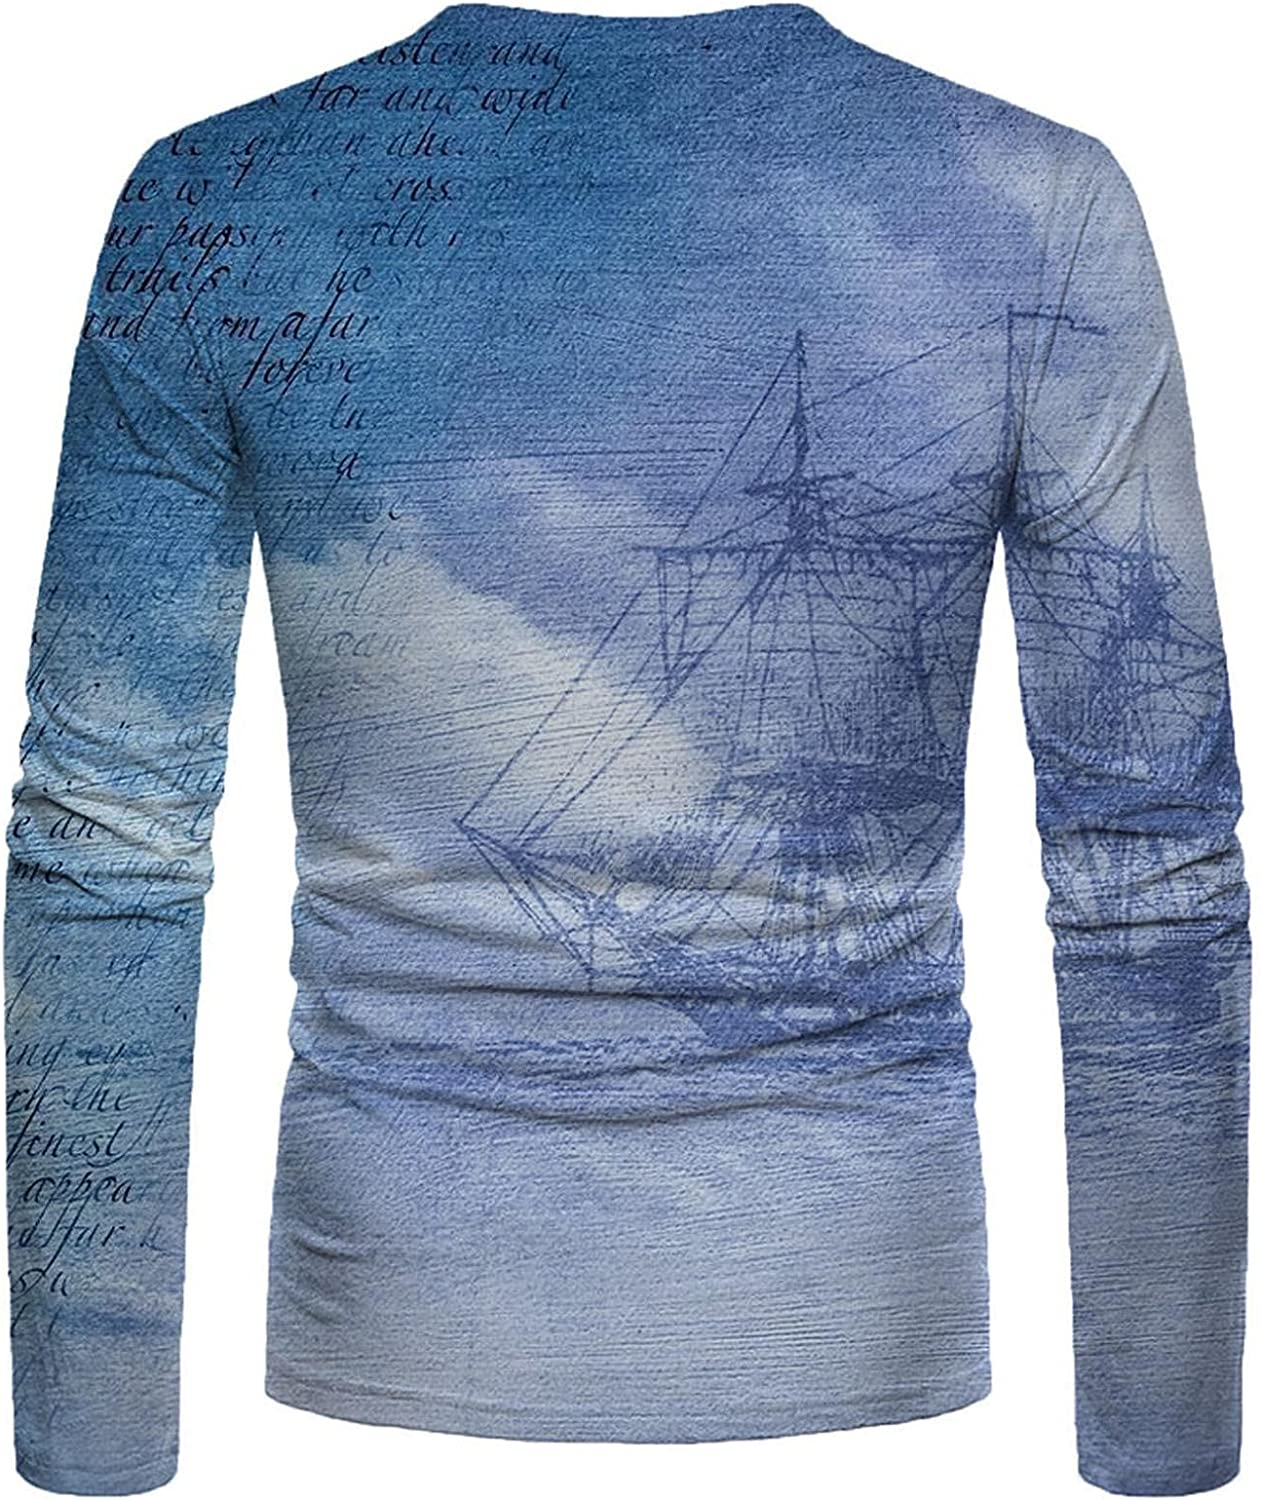 Shirts for Men Men's Autumn And Winter Casual Fashion Printed Round Neck Long-sleeve Tee Mens Shirts Polo Mens Shirts